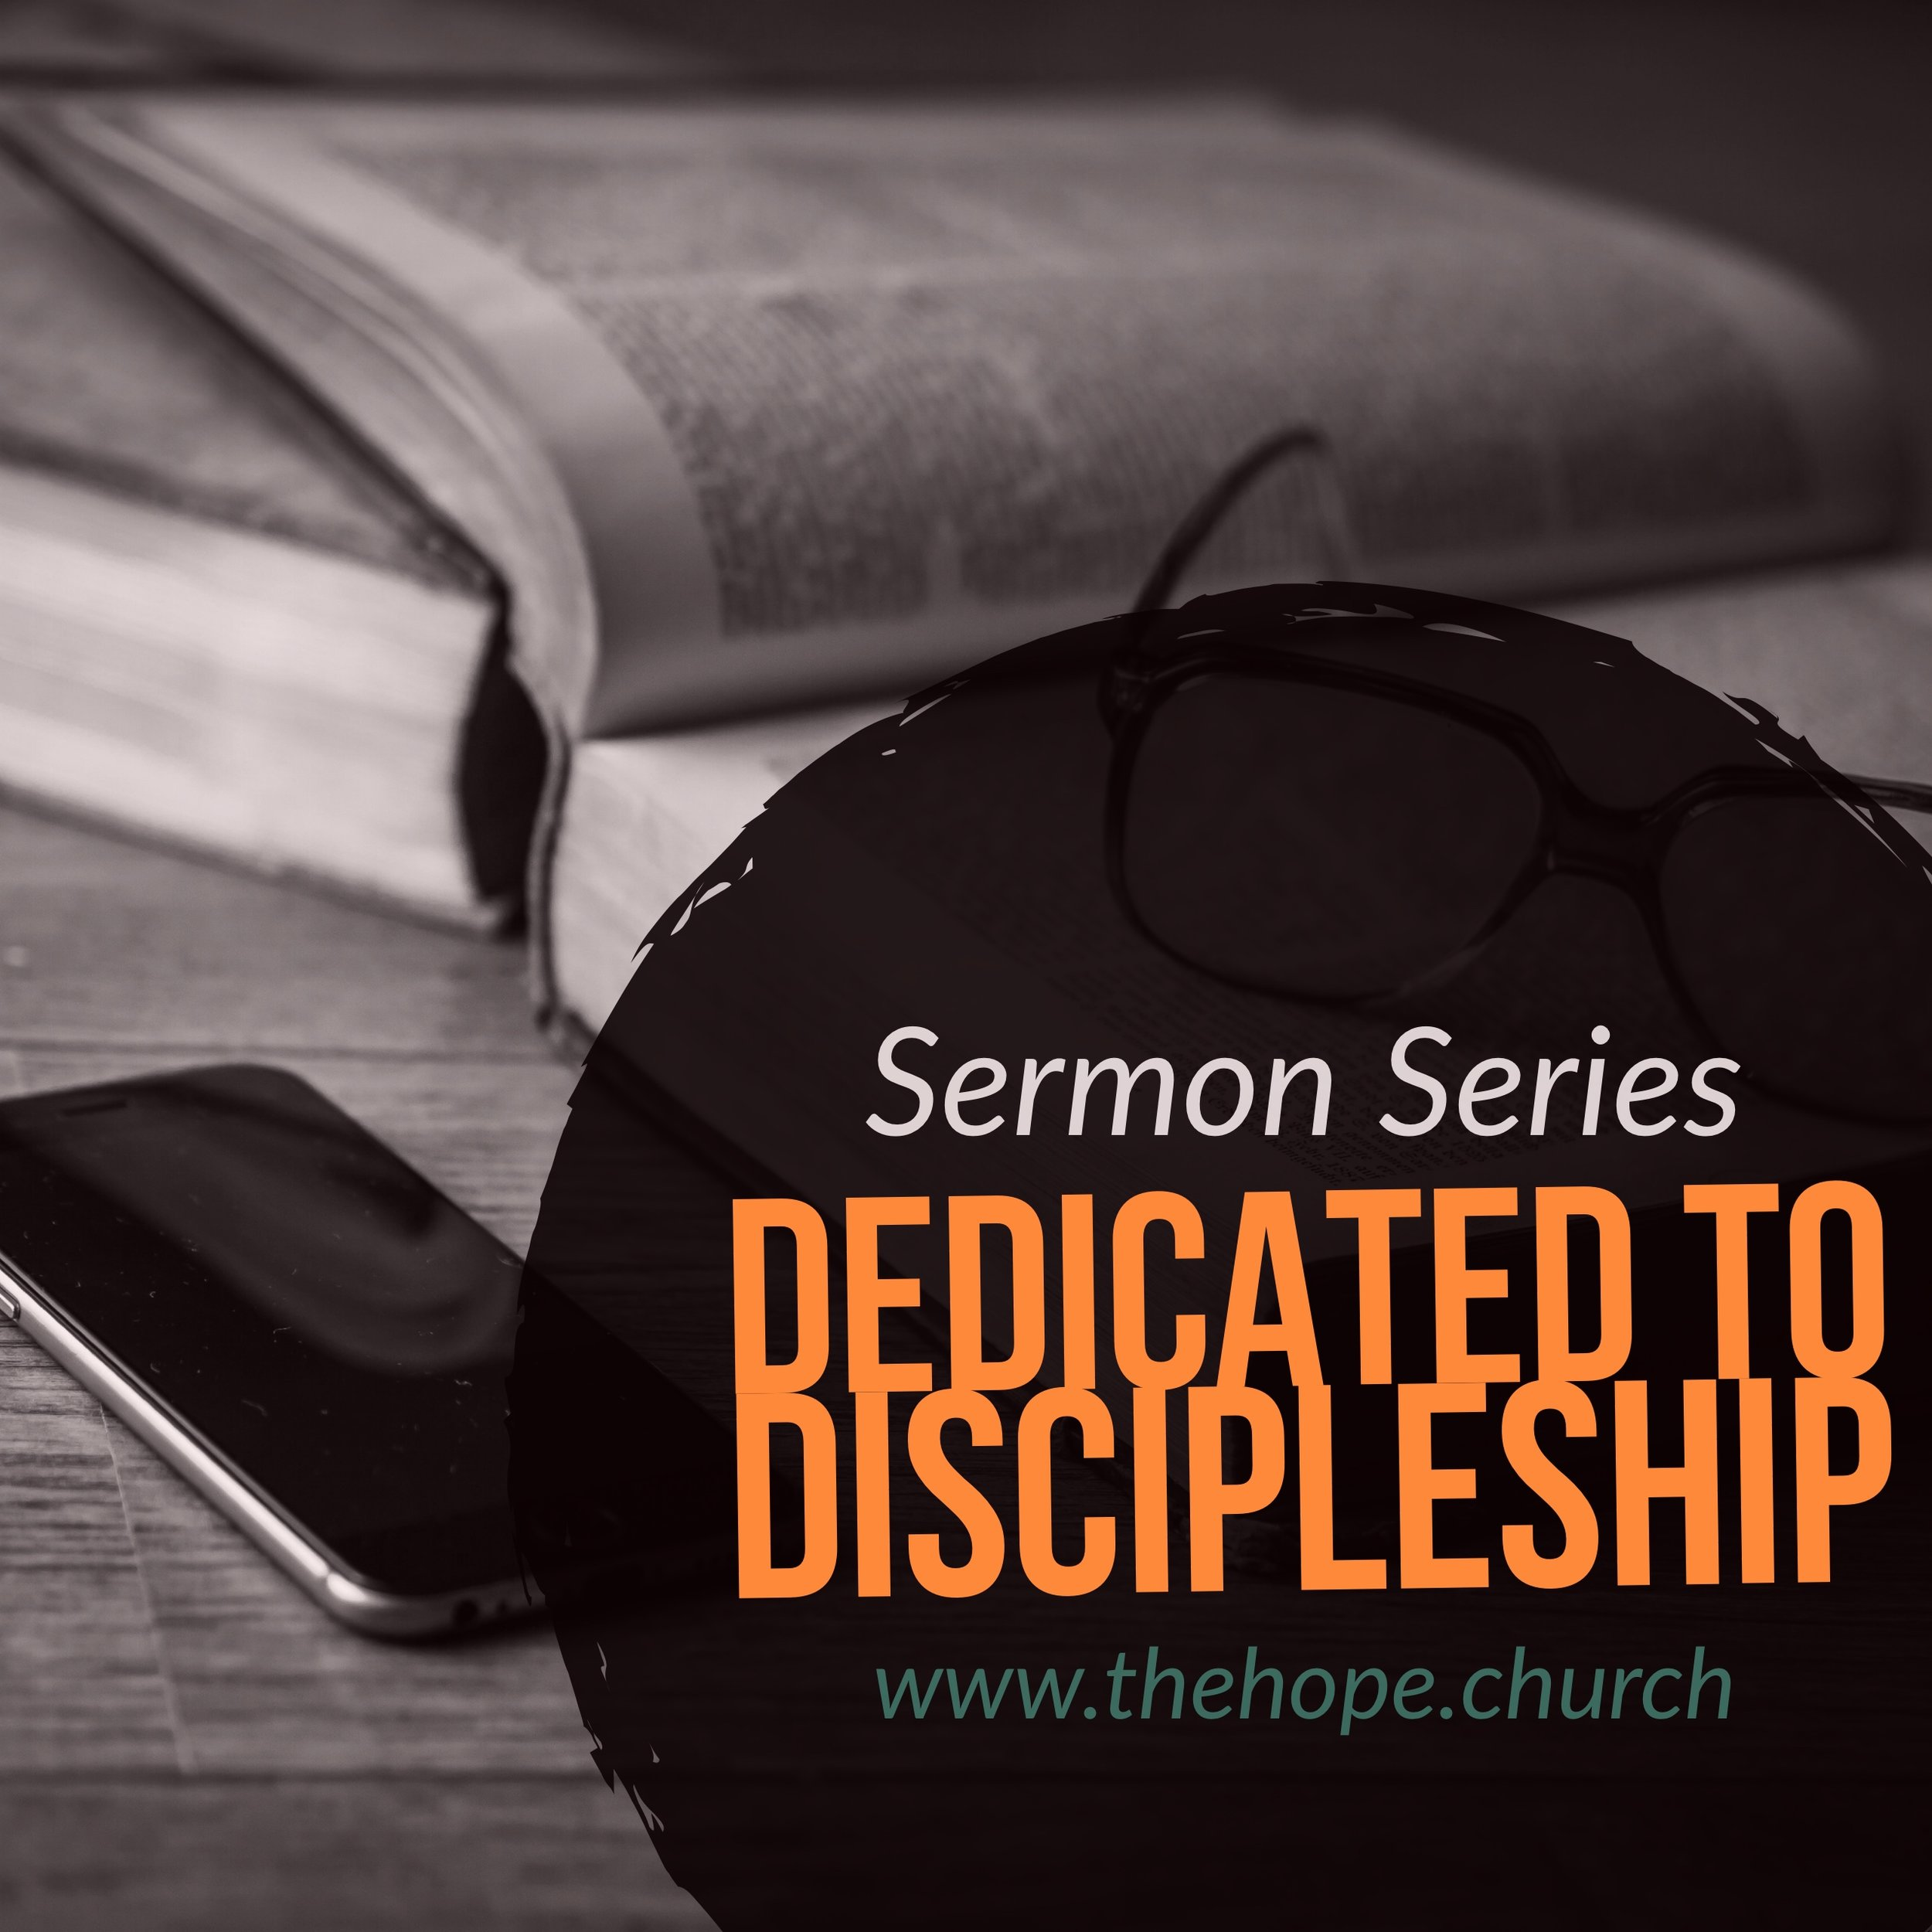 What does it take to be a disciple of Jesus - How dedicated do we need to be, and what does that look line in the 21st century?